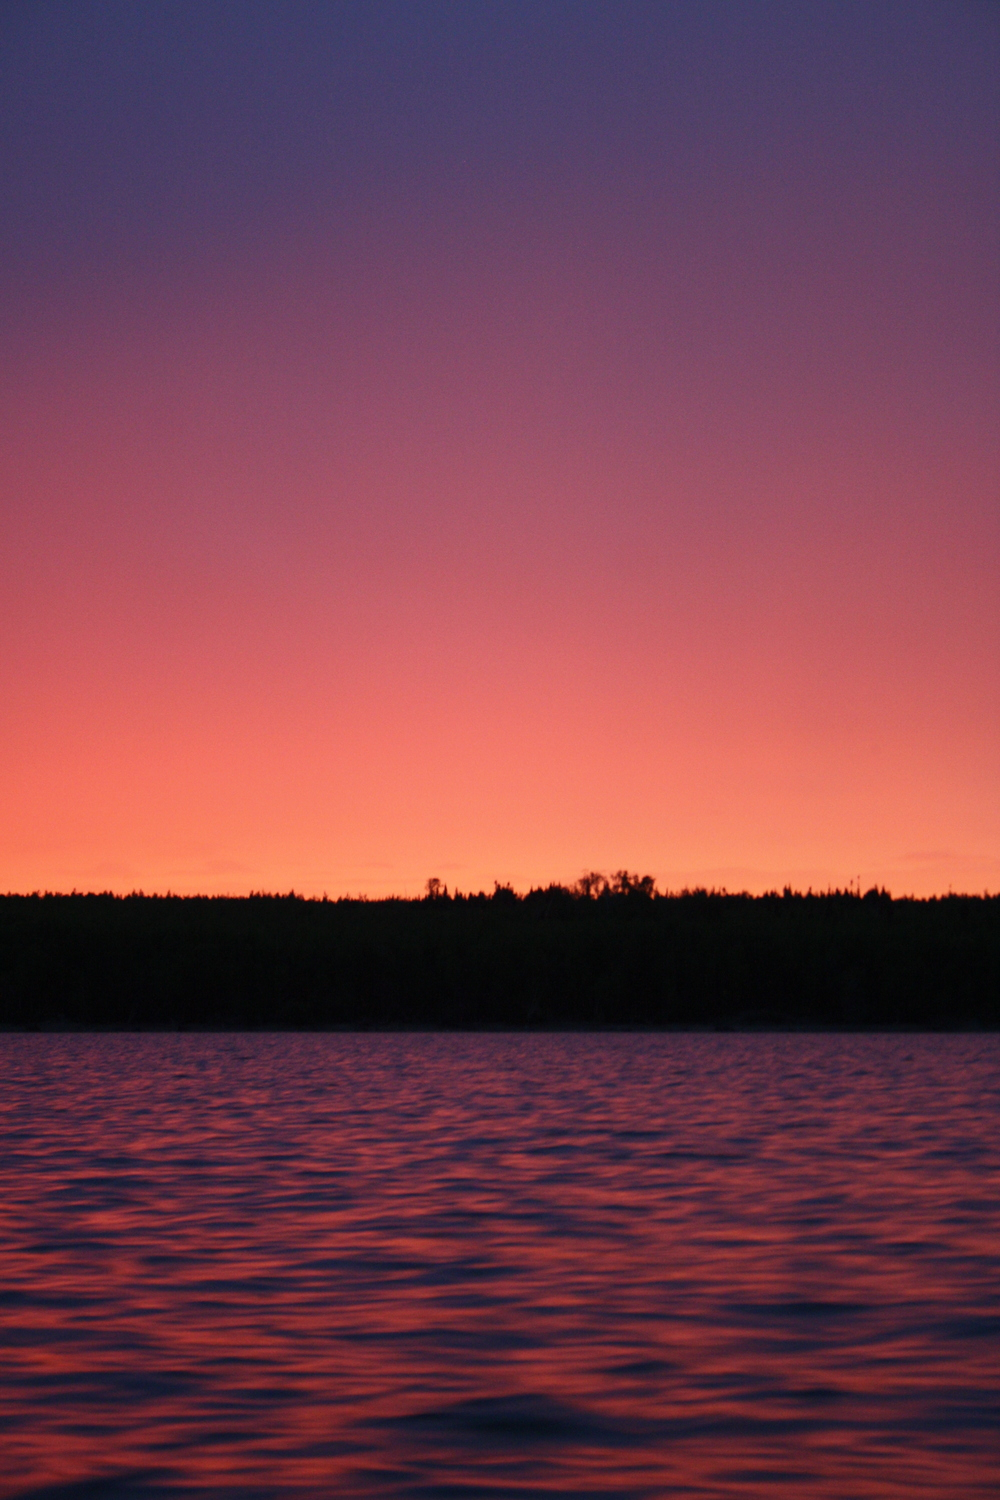 Sunset, Lake Winnipeg